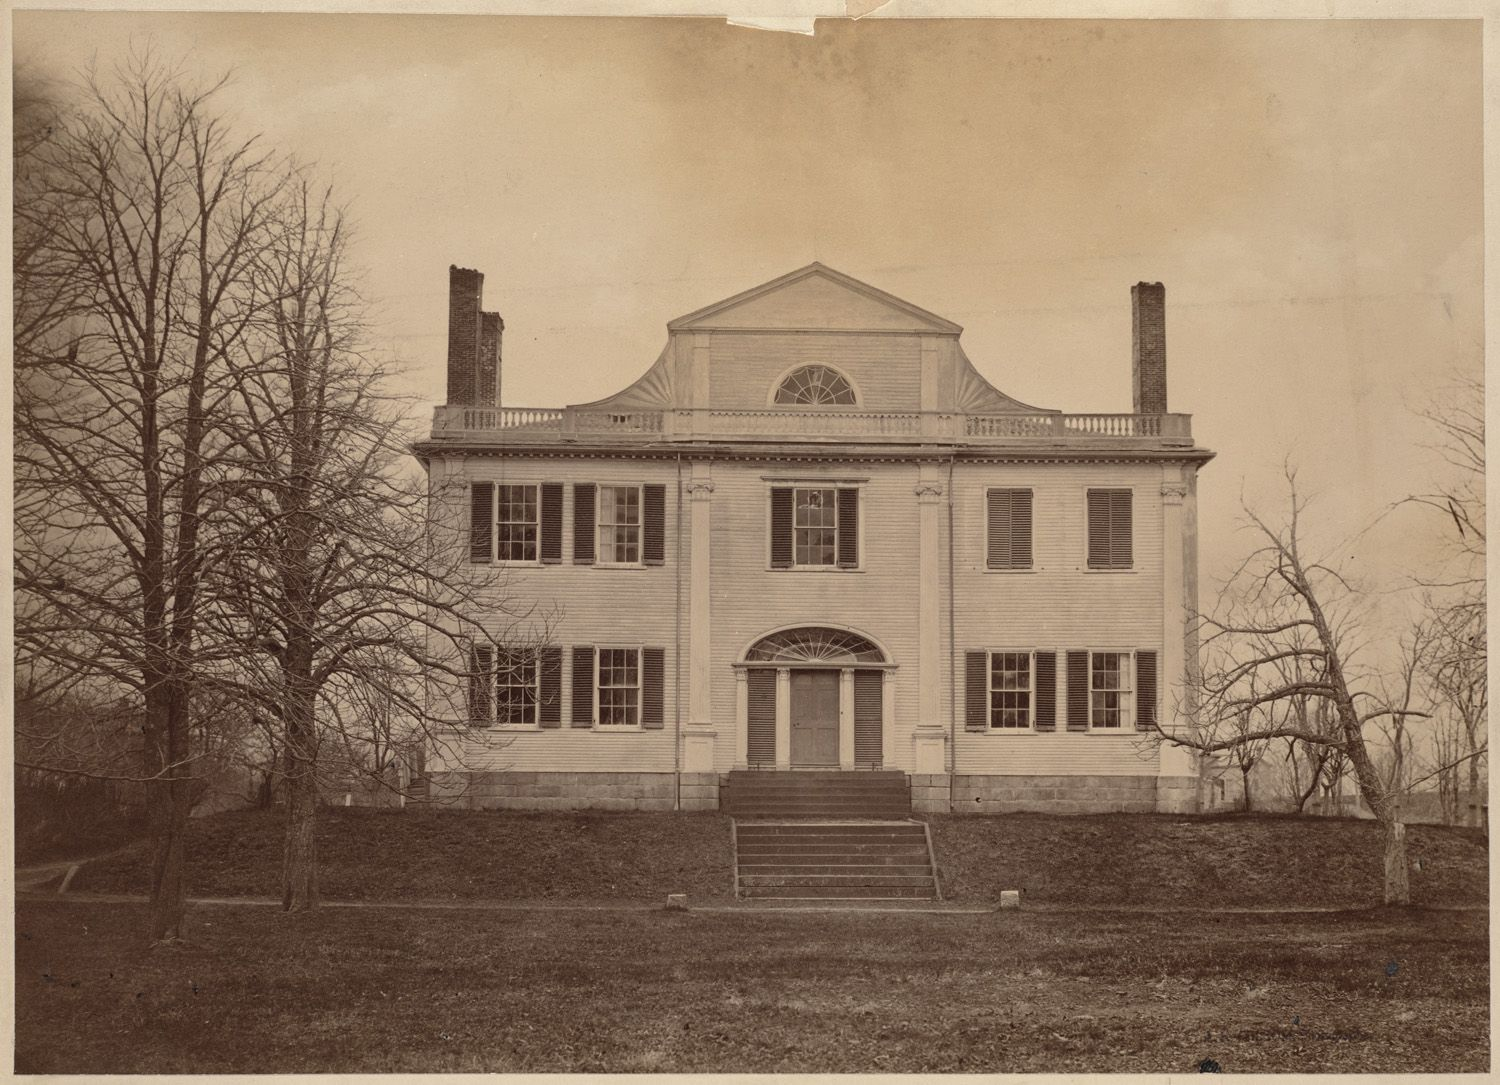 THE DOWNEAST DILETTANTE: AN INTERESTING HOUSE, & QUESTIONS WHOSE ANSWERS I DO NOT KNOW